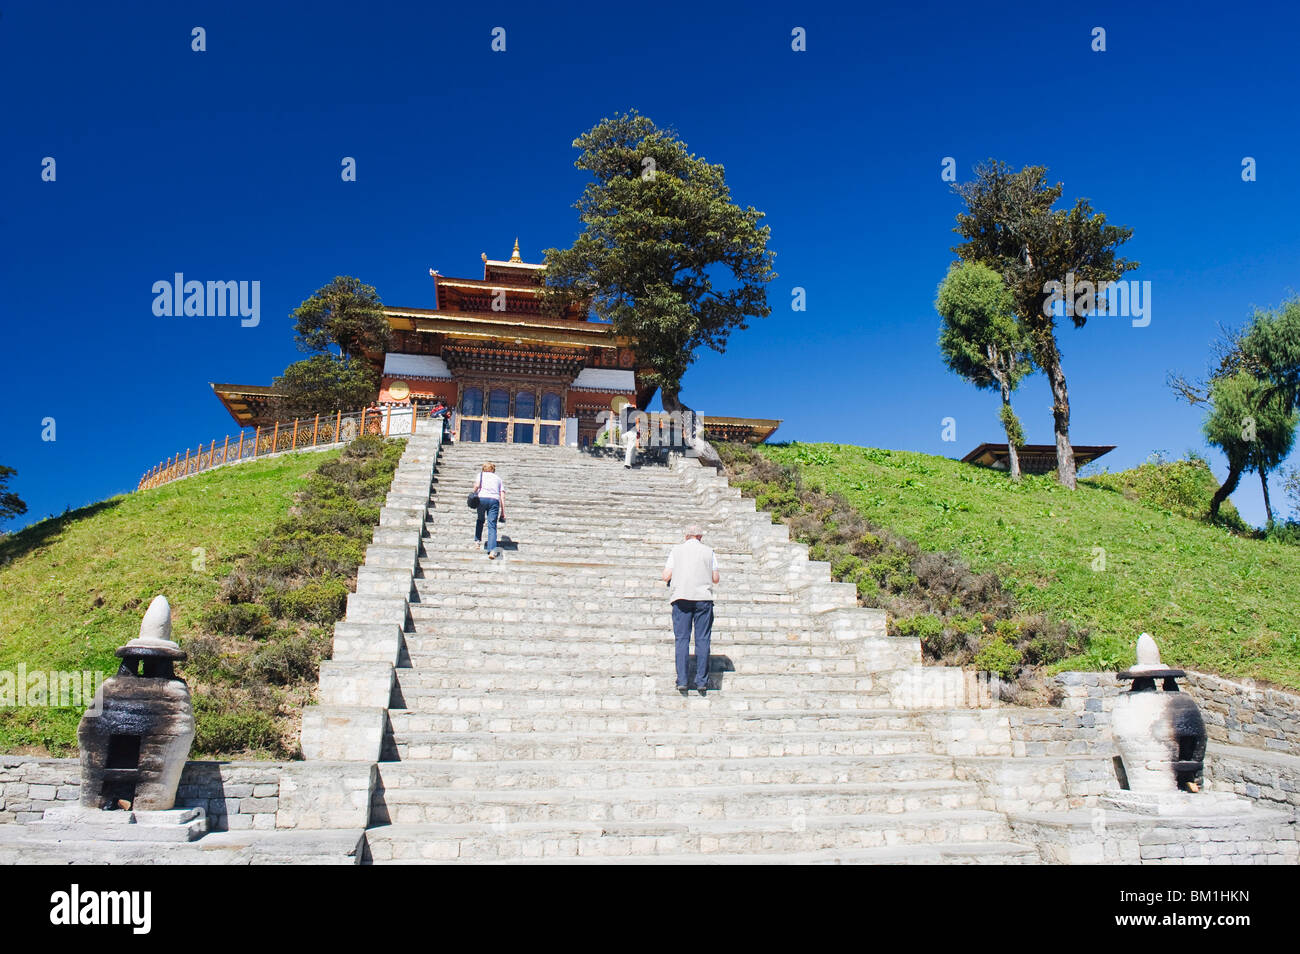 Temple on the site of 108 chortens built in 2005 to commemorate a battle with militants, Dochu La pass, 3140m, Bhutan, - Stock Image